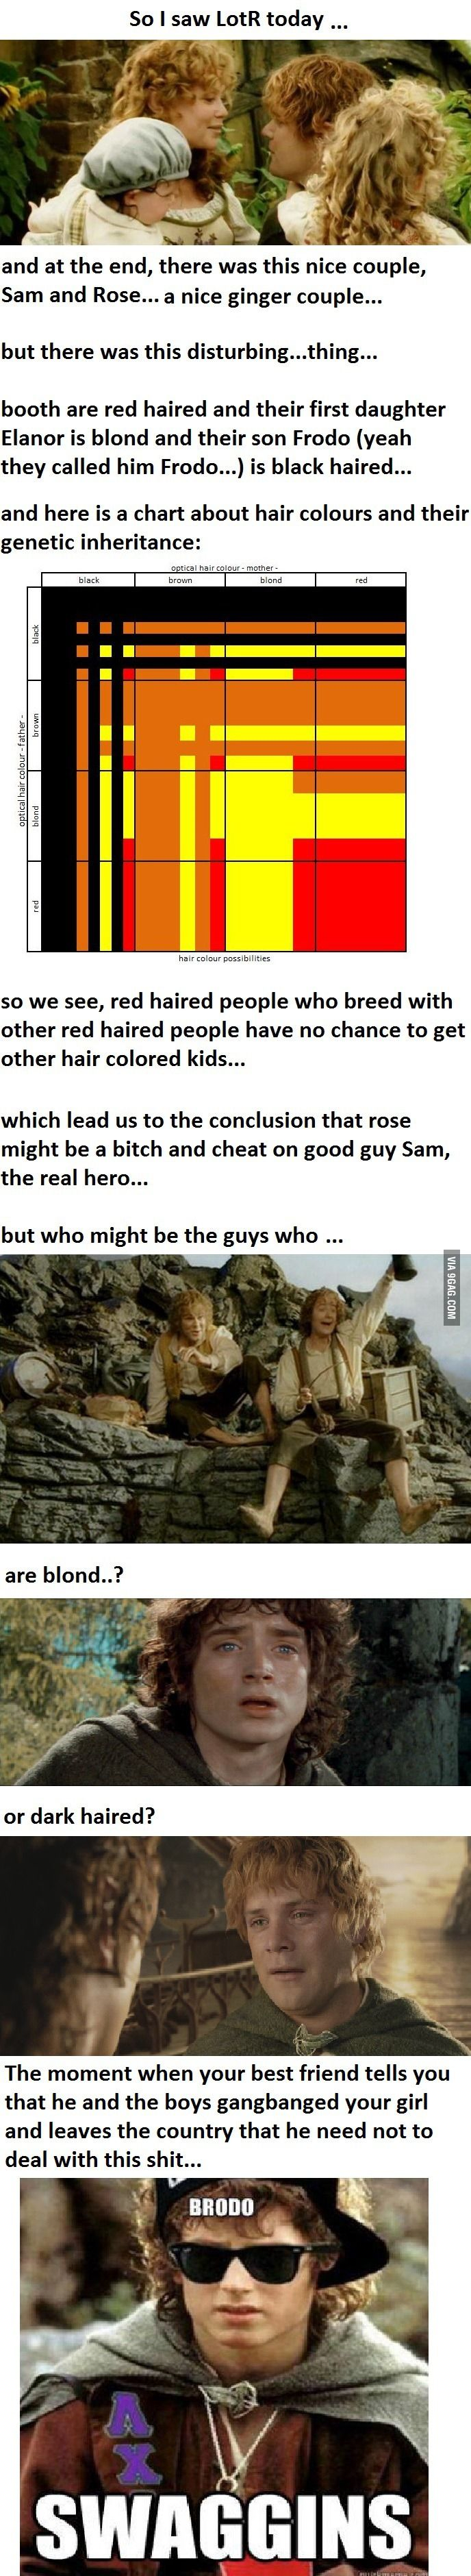 Sorry Sam, f**k you Frodo and your Hobbit cu*ts...